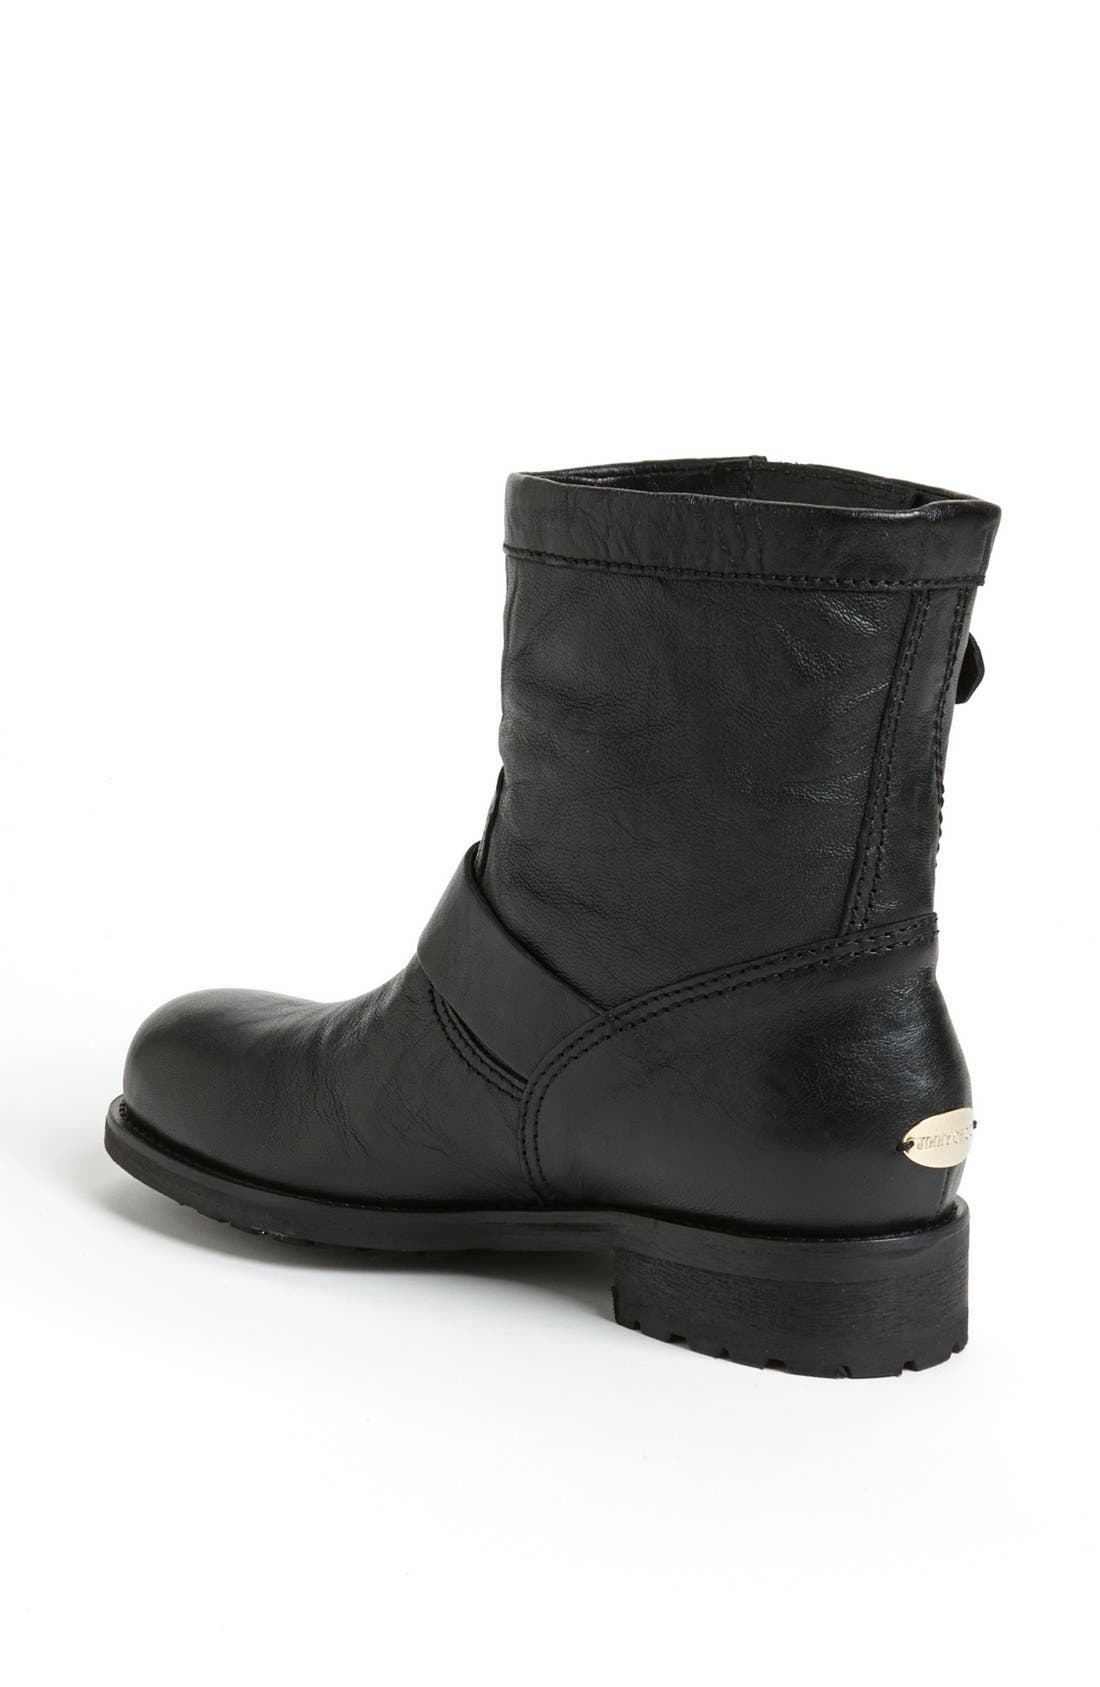 Alternate Image 2  - Jimmy Choo 'Youth' Short Biker Boot (Women)